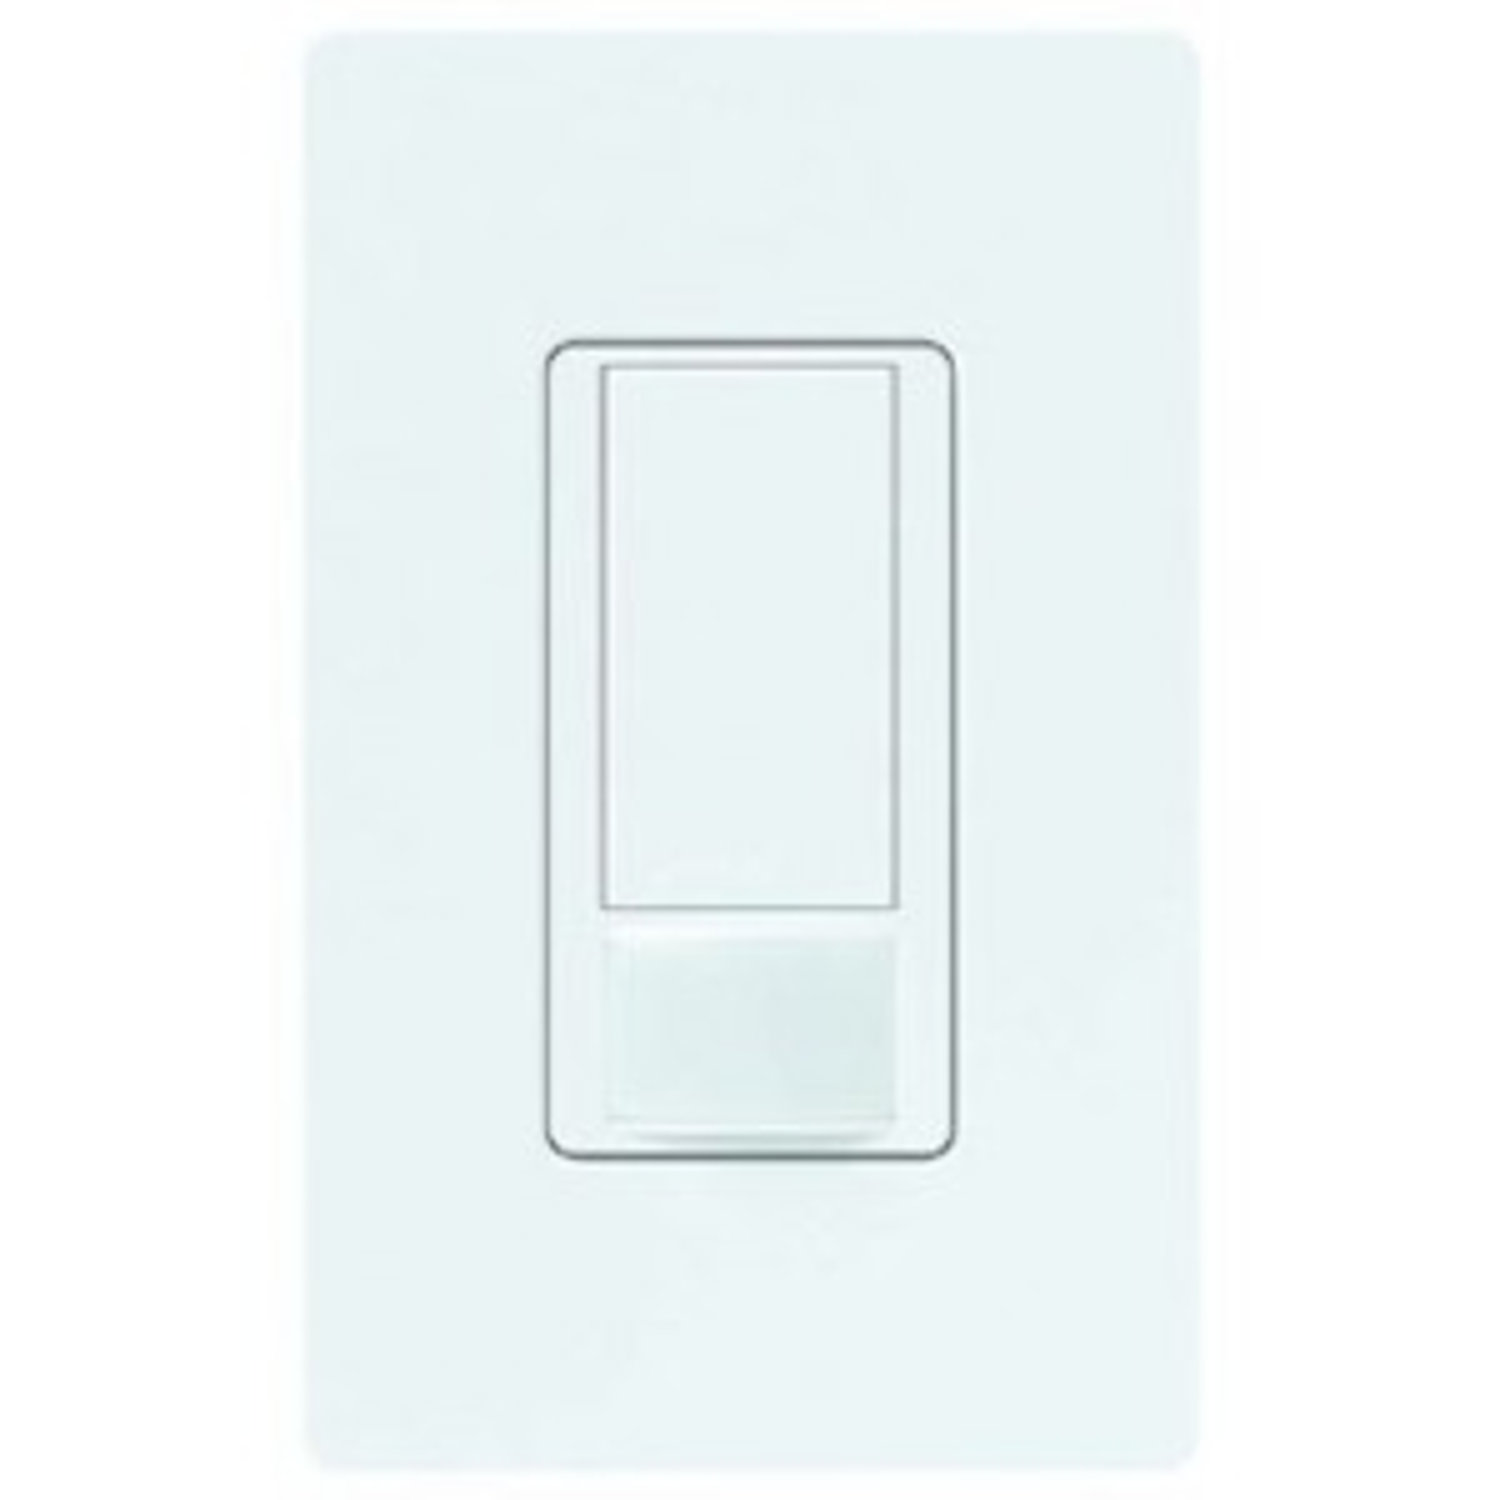 Lutron light switch with built-in motion detector